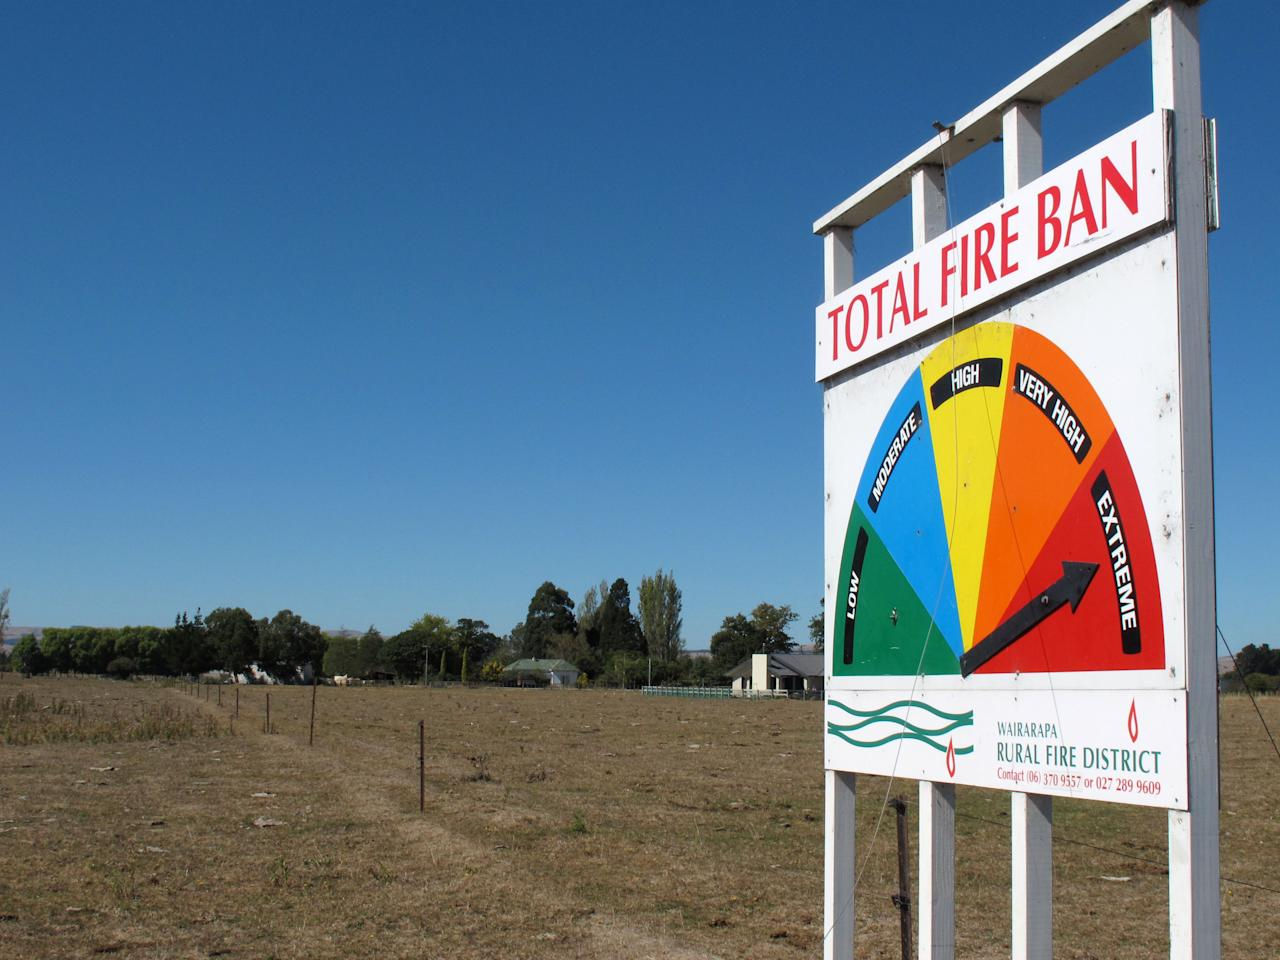 A sign warns about the risk of fire on Thursday, March 14, 2013, near Carterton, New Zealand. A drought in New Zealand's North Island is costing farmers millions of dollars each day and is beginning to take a toll on the country's economy. (AP Photo/Nick Perry)